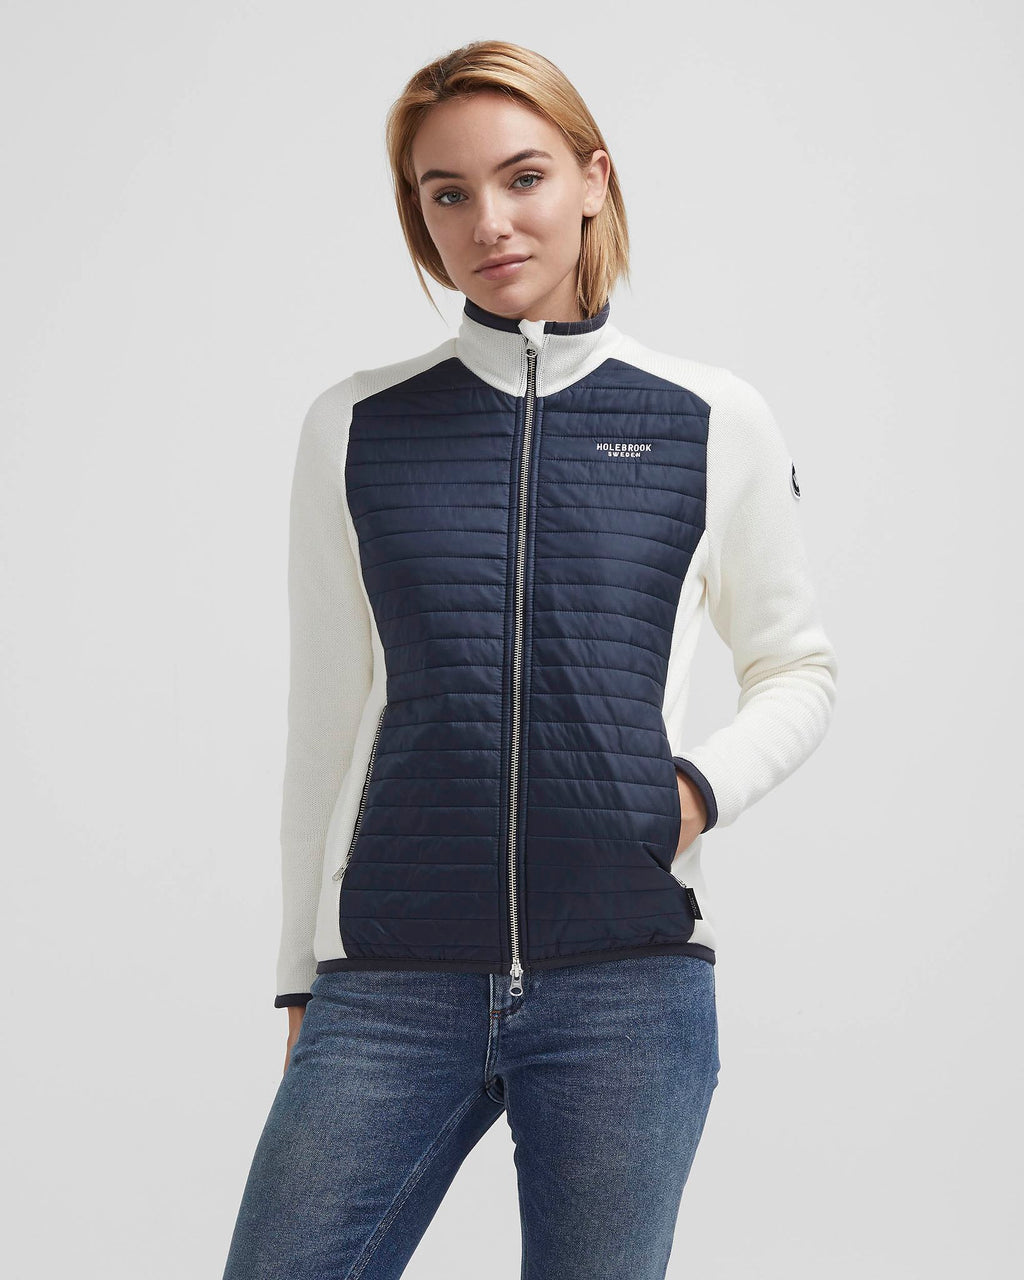 Holebrook Mimmi Fullzip WP